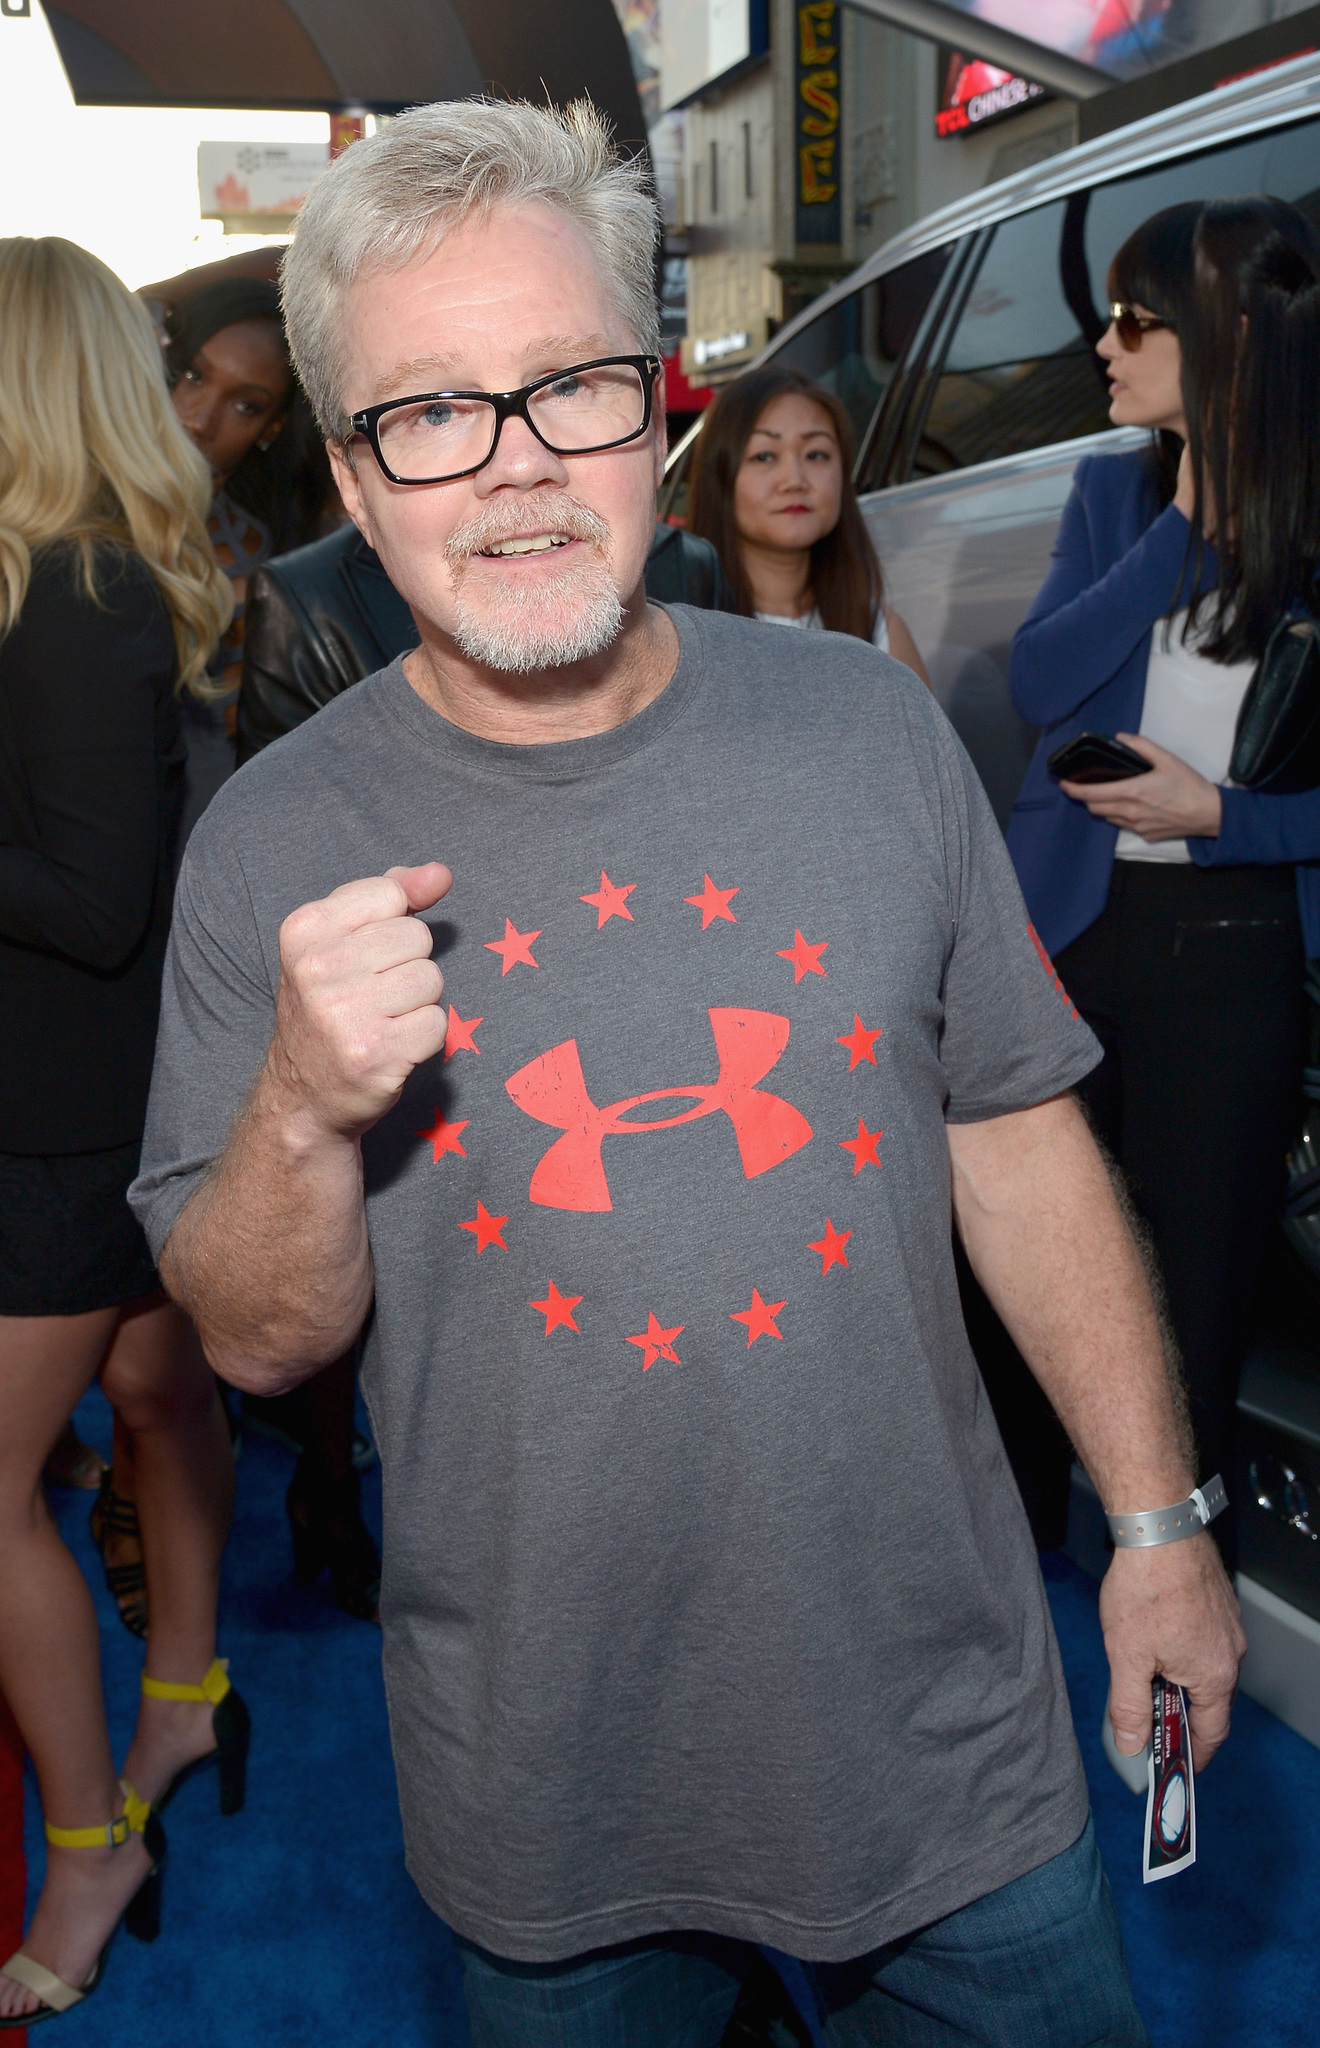 The 60-year old son of father (?) and mother(?) Freddie Roach in 2020 photo. Freddie Roach earned a  million dollar salary - leaving the net worth at  million in 2020